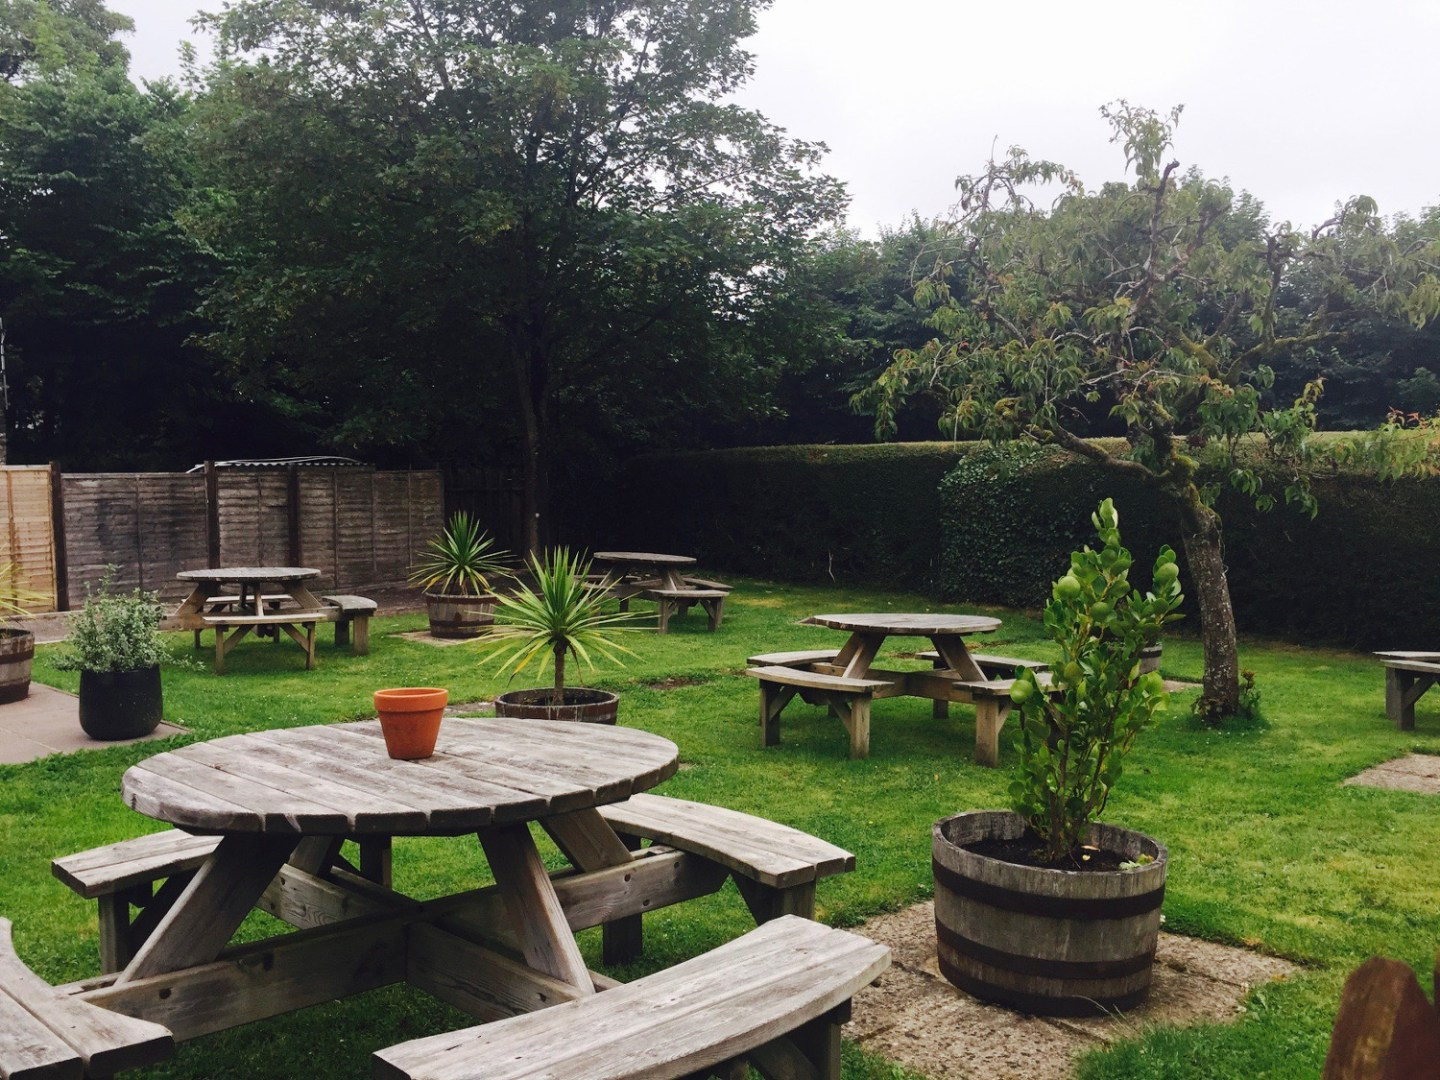 The Bush Inn Beer Garden